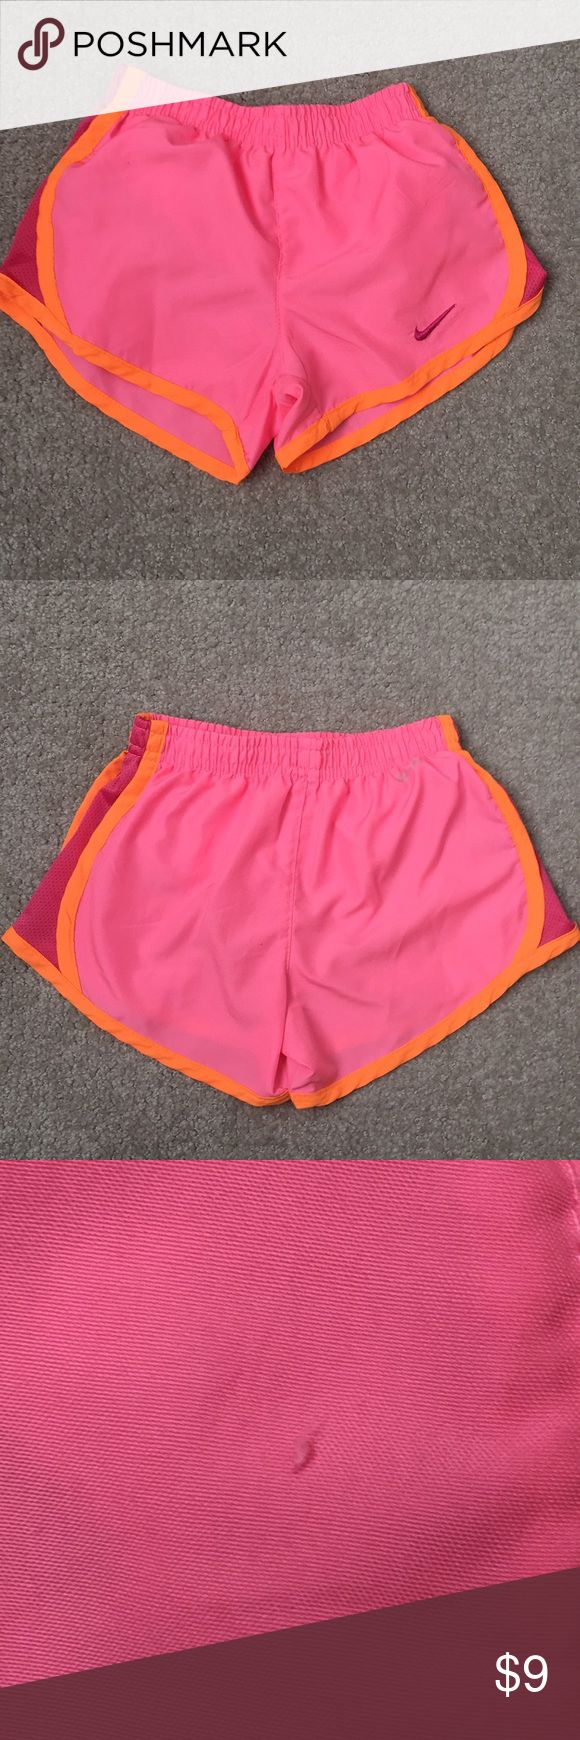 Girls Nike Dri-Fit shorts Girls Nike shorts in pink with orange piping. Super cute. In great condition. One blemish (tiny pull) on back near center seam (see pic 3) not noticeable. Worn a couple times. Has built in liner.  Girls size 5 Nike Bottoms Shorts